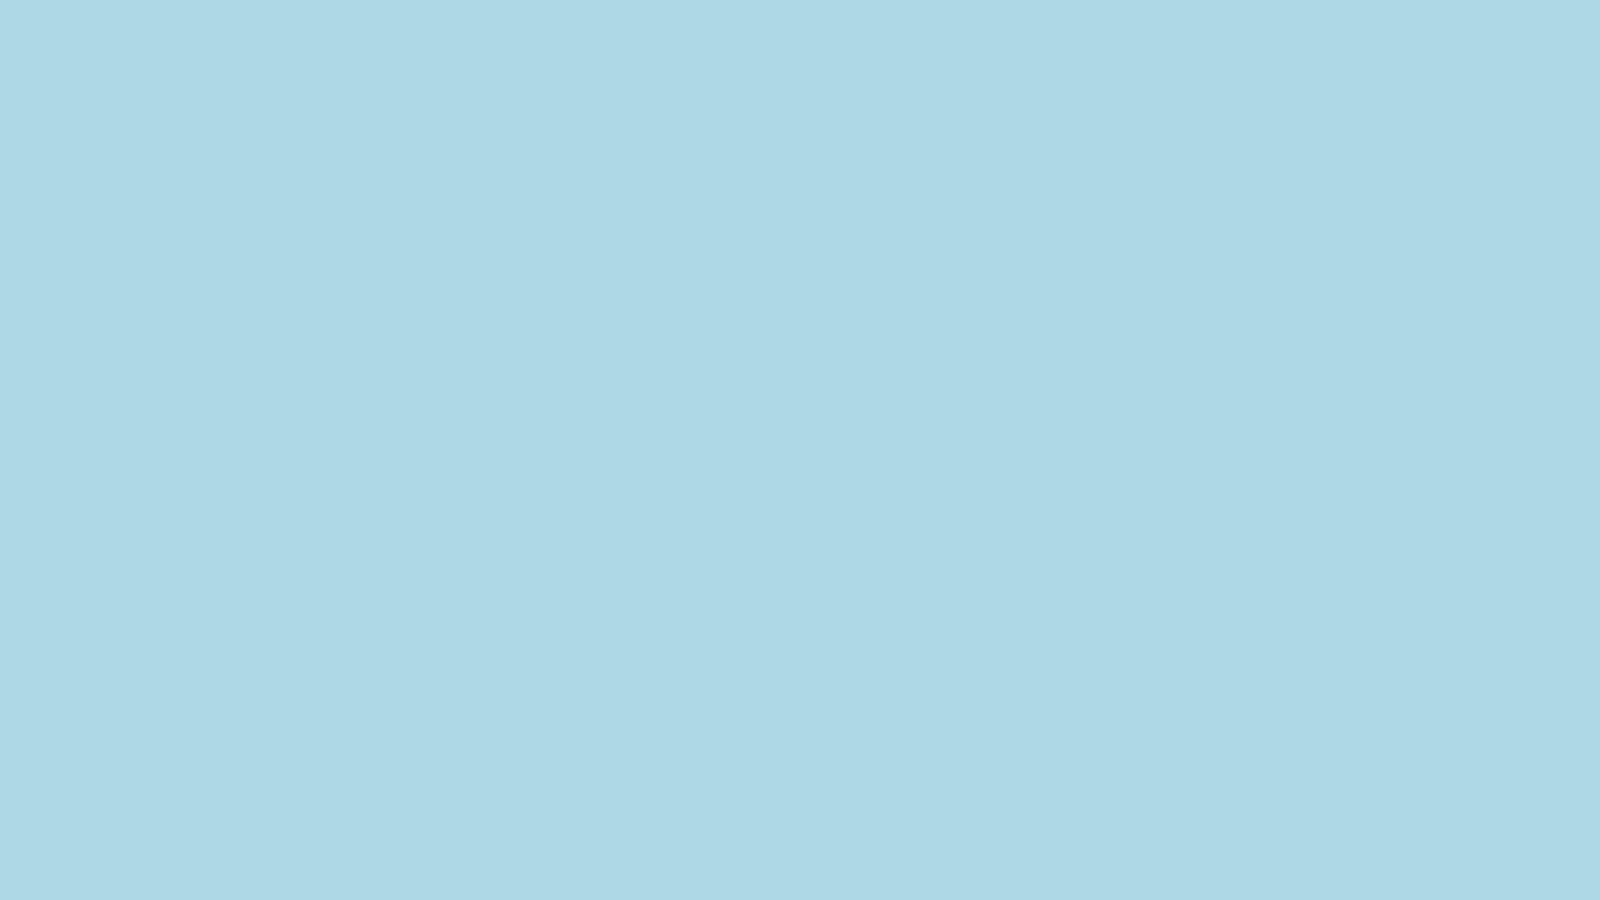 1600x900 Light Blue Solid Color Background